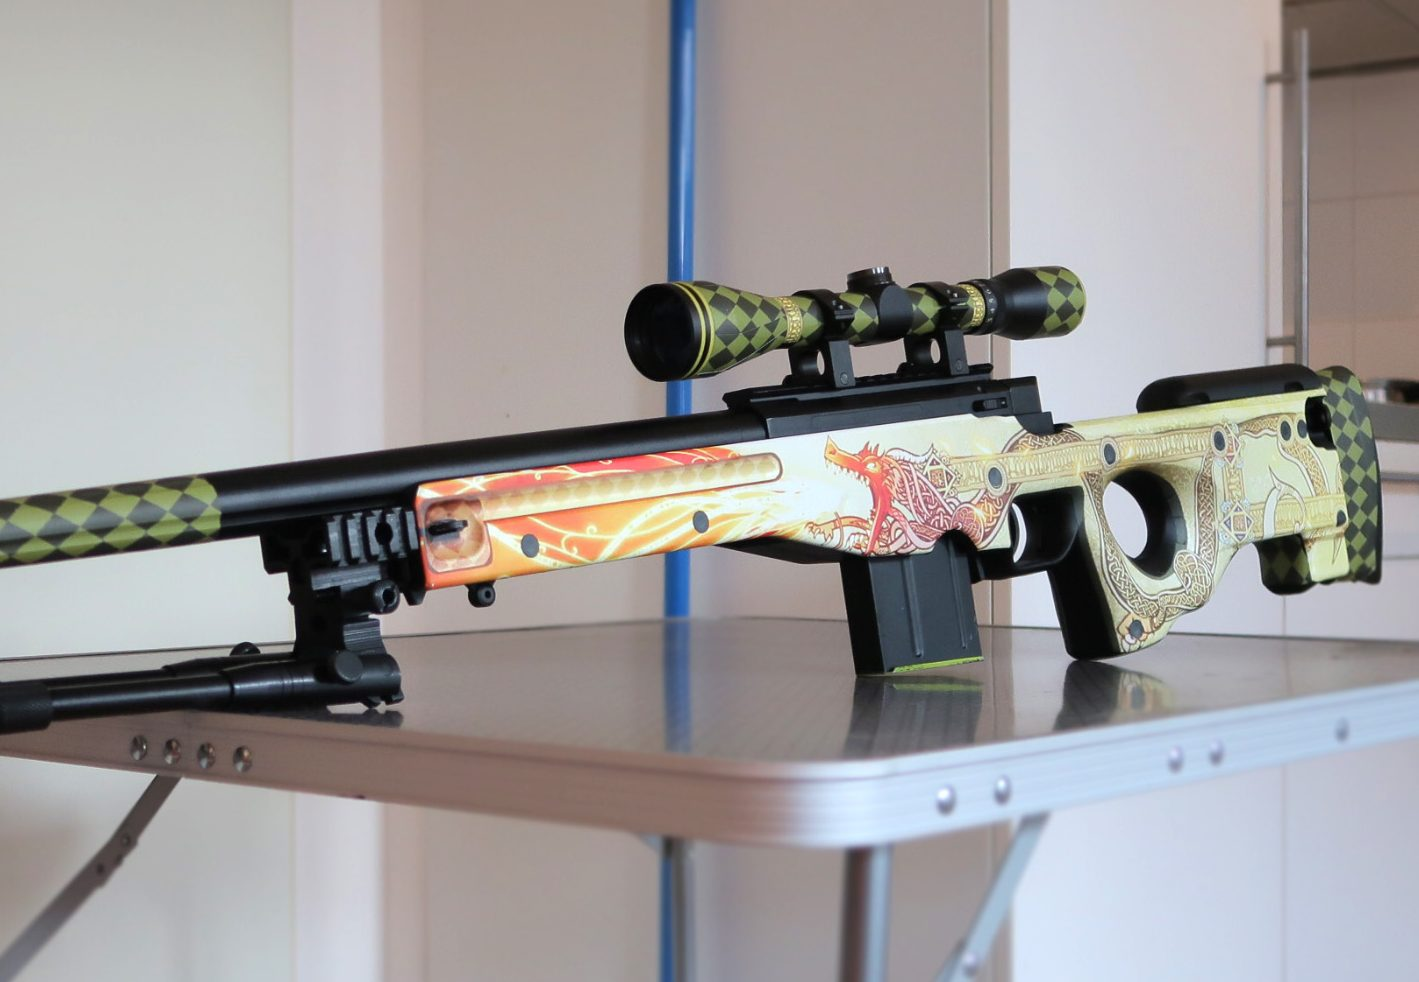 Awp Dragon Lore Vinyl Decal For L96 Airsoft Models Silo